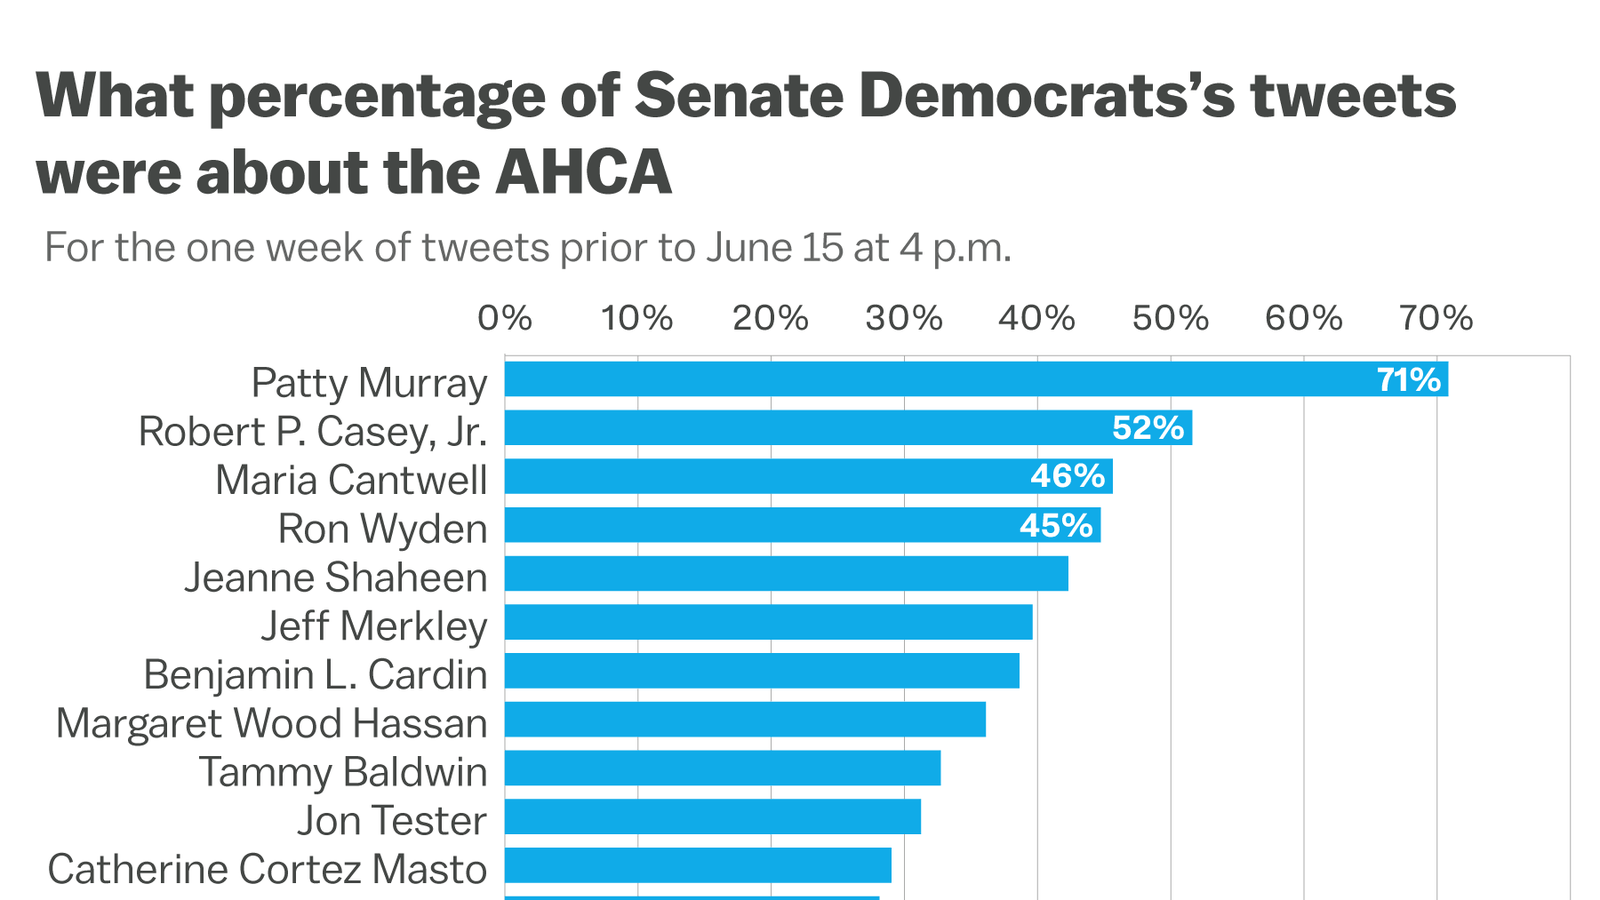 Senate Democrats Arent Relentlessly Focused On Health Care Twitter Is That A Mistake